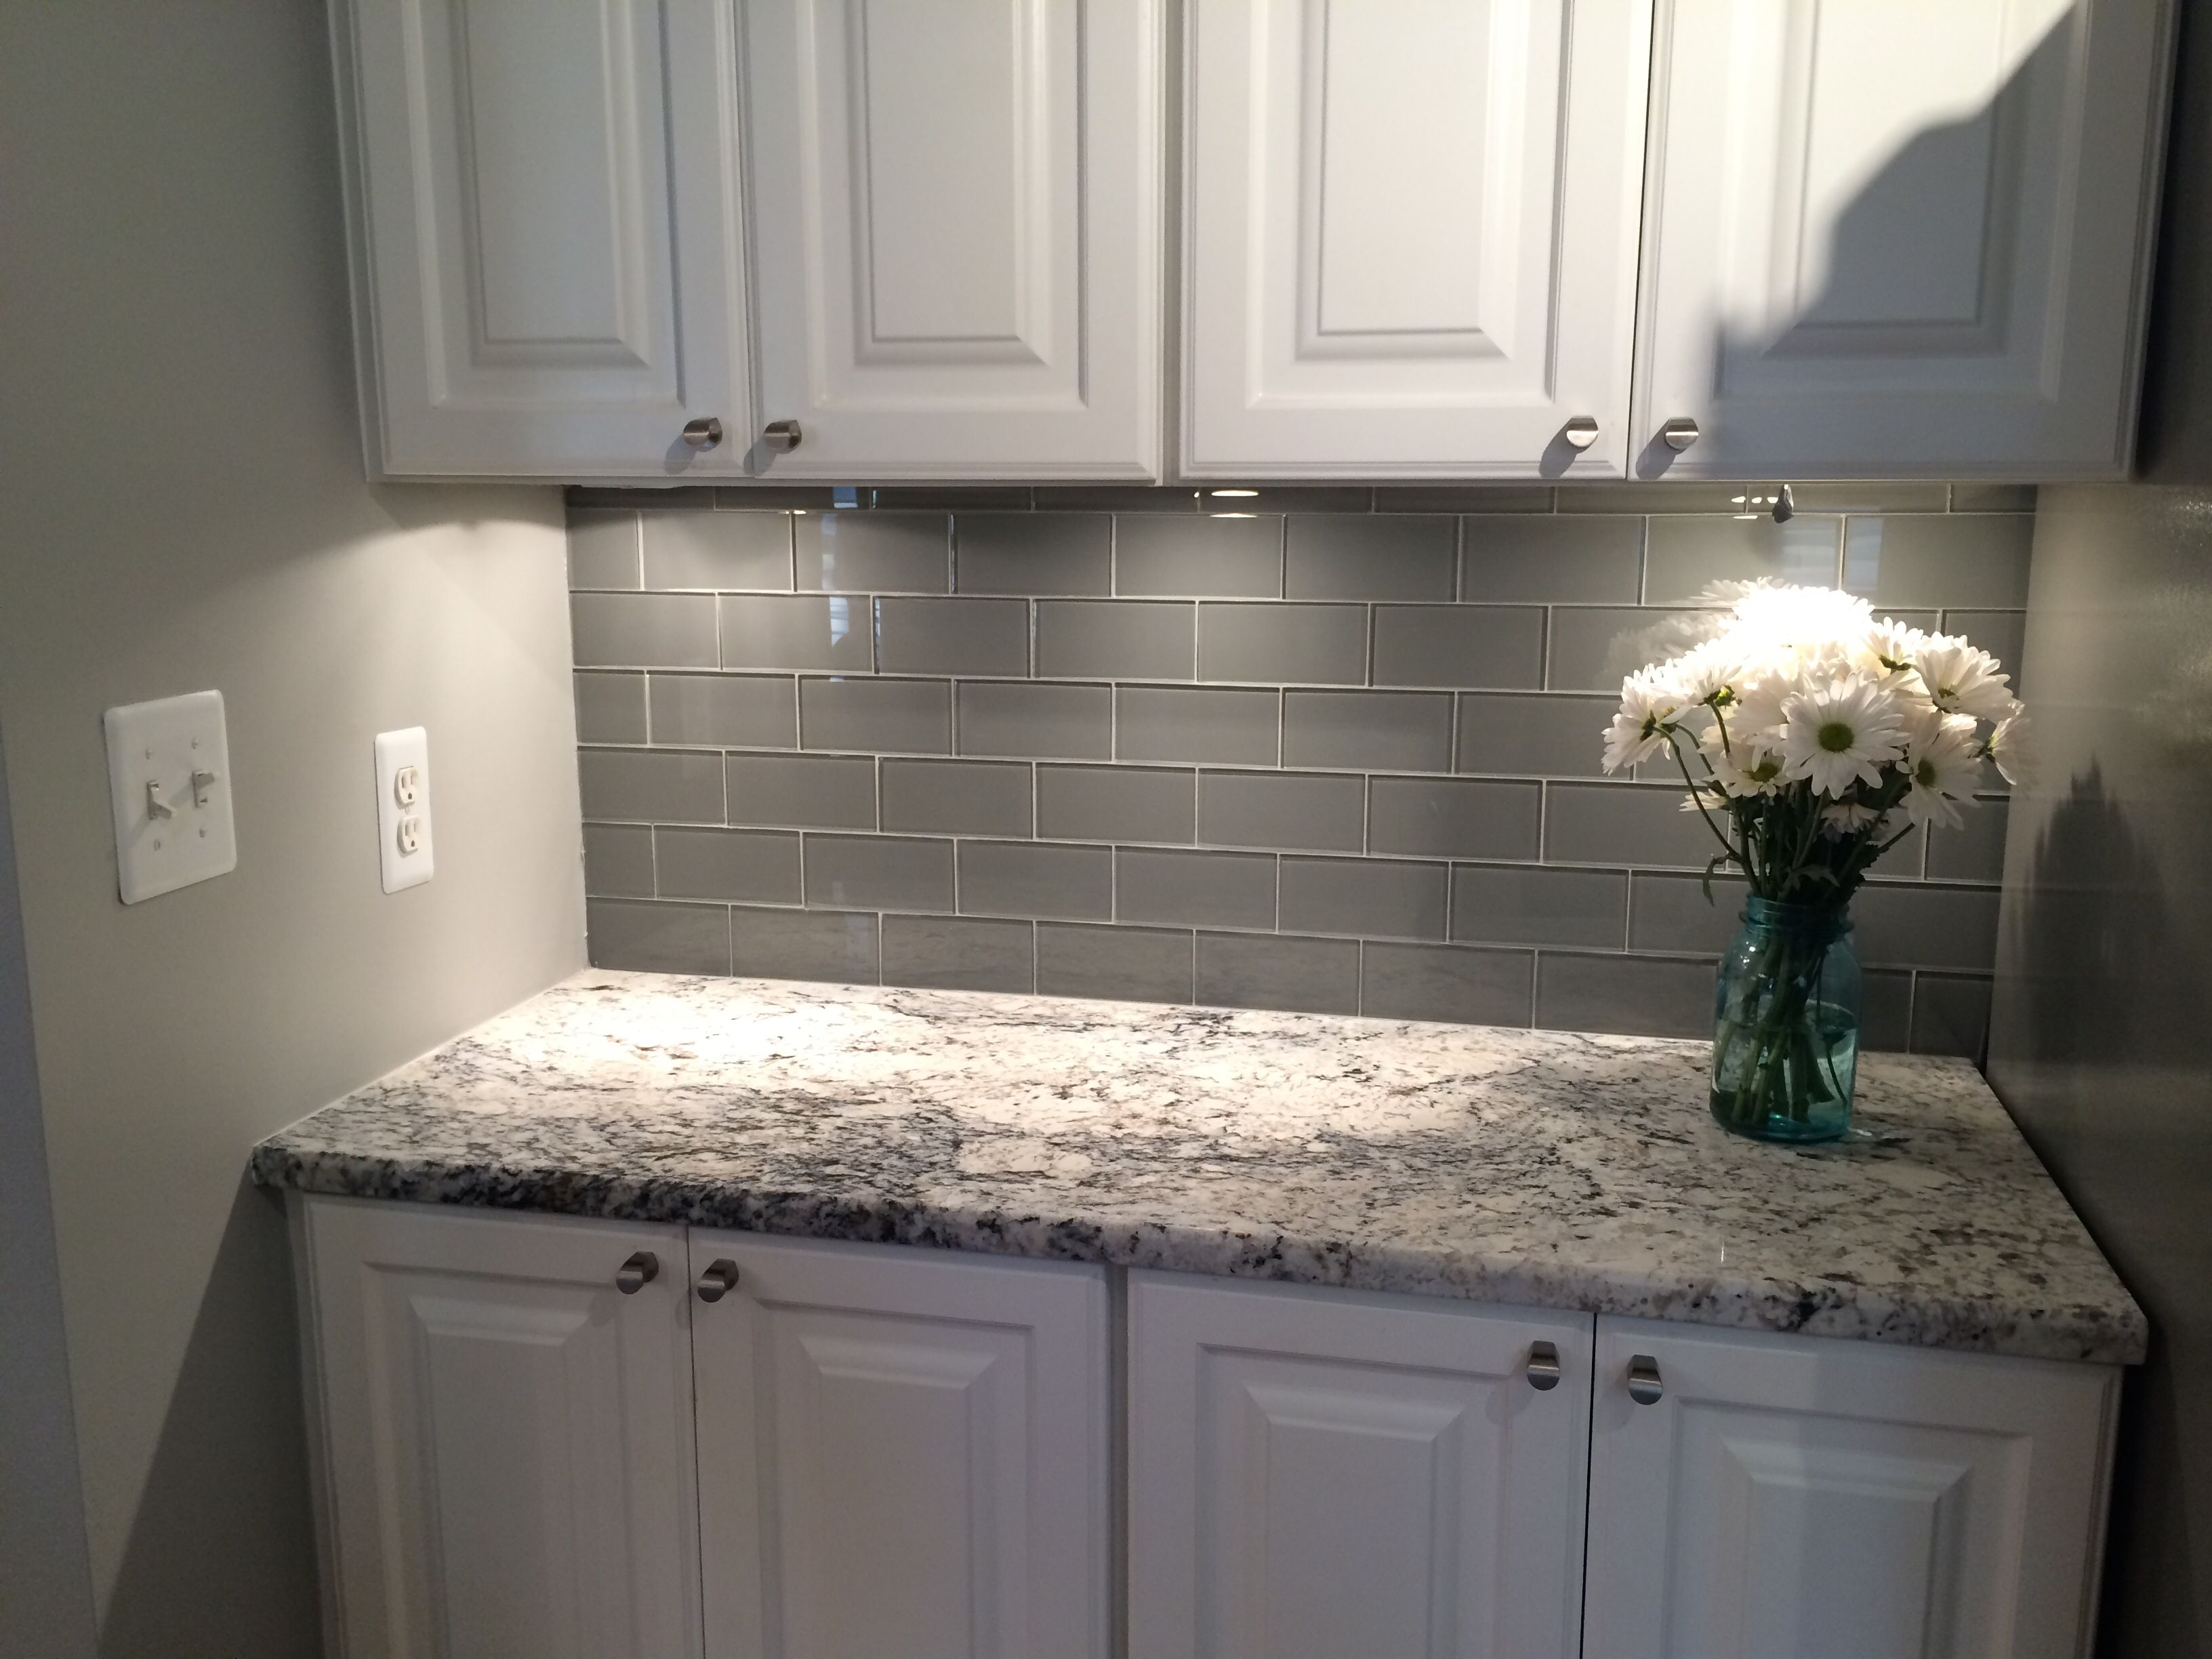 Tile Backsplash With White Cabinets grey glass subway tile backsplash and white cabinet for small